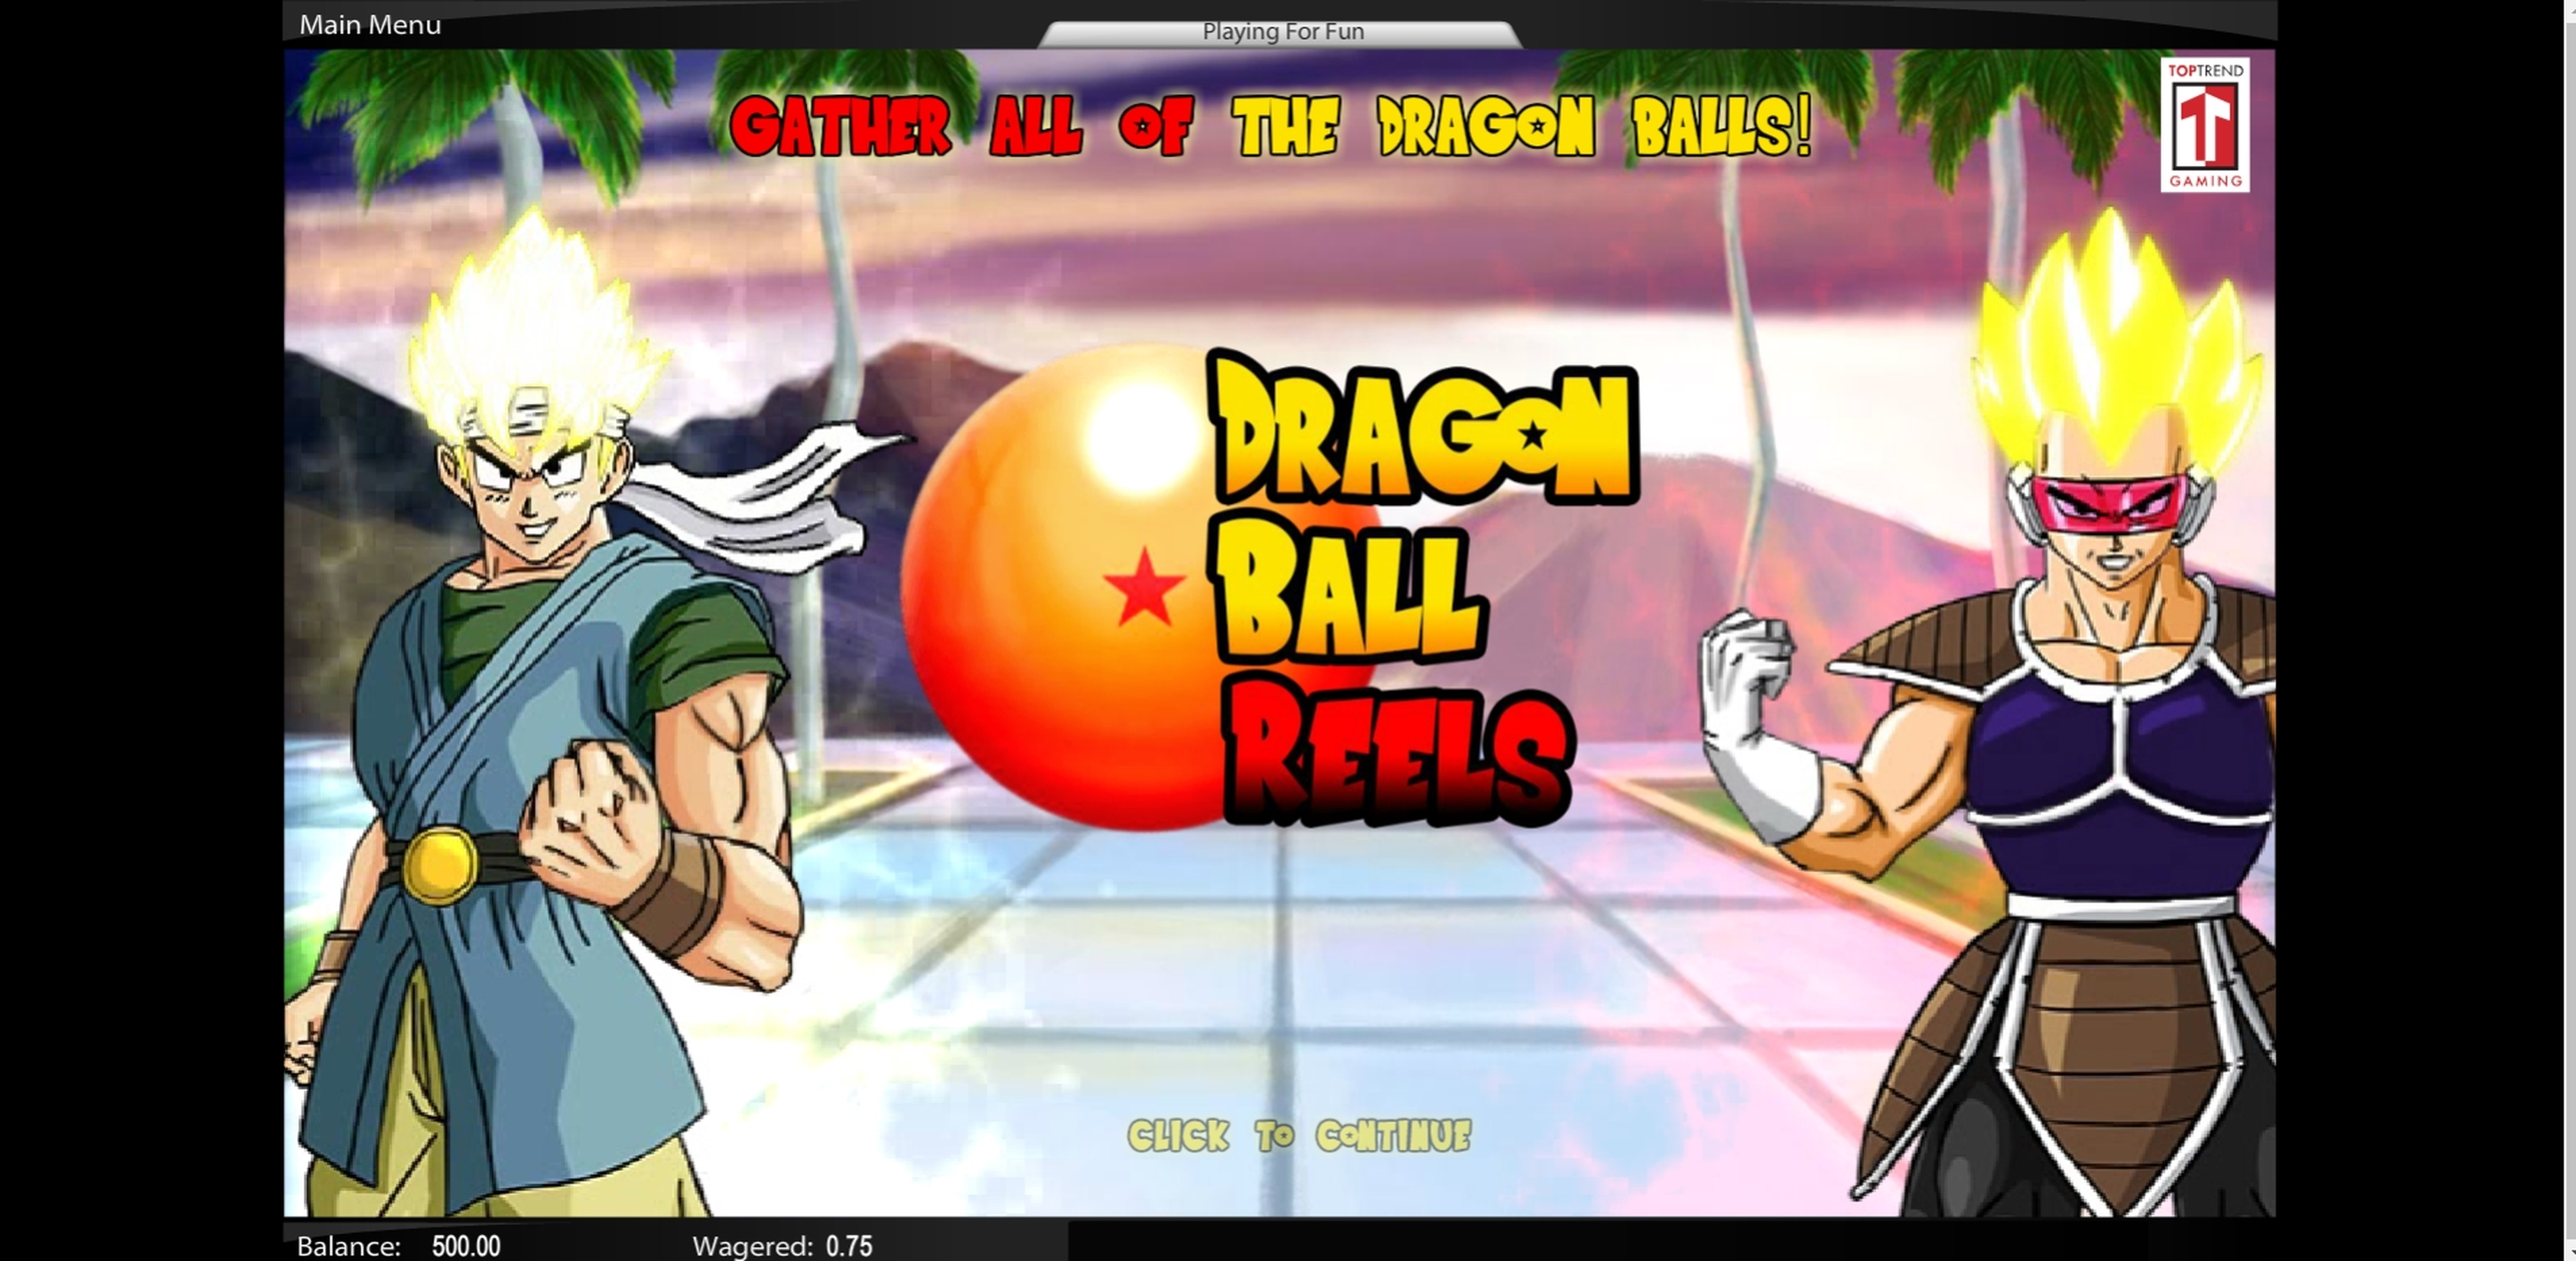 Play Dragon Ball Reels Free Casino Slot Game by Top Trend Gaming